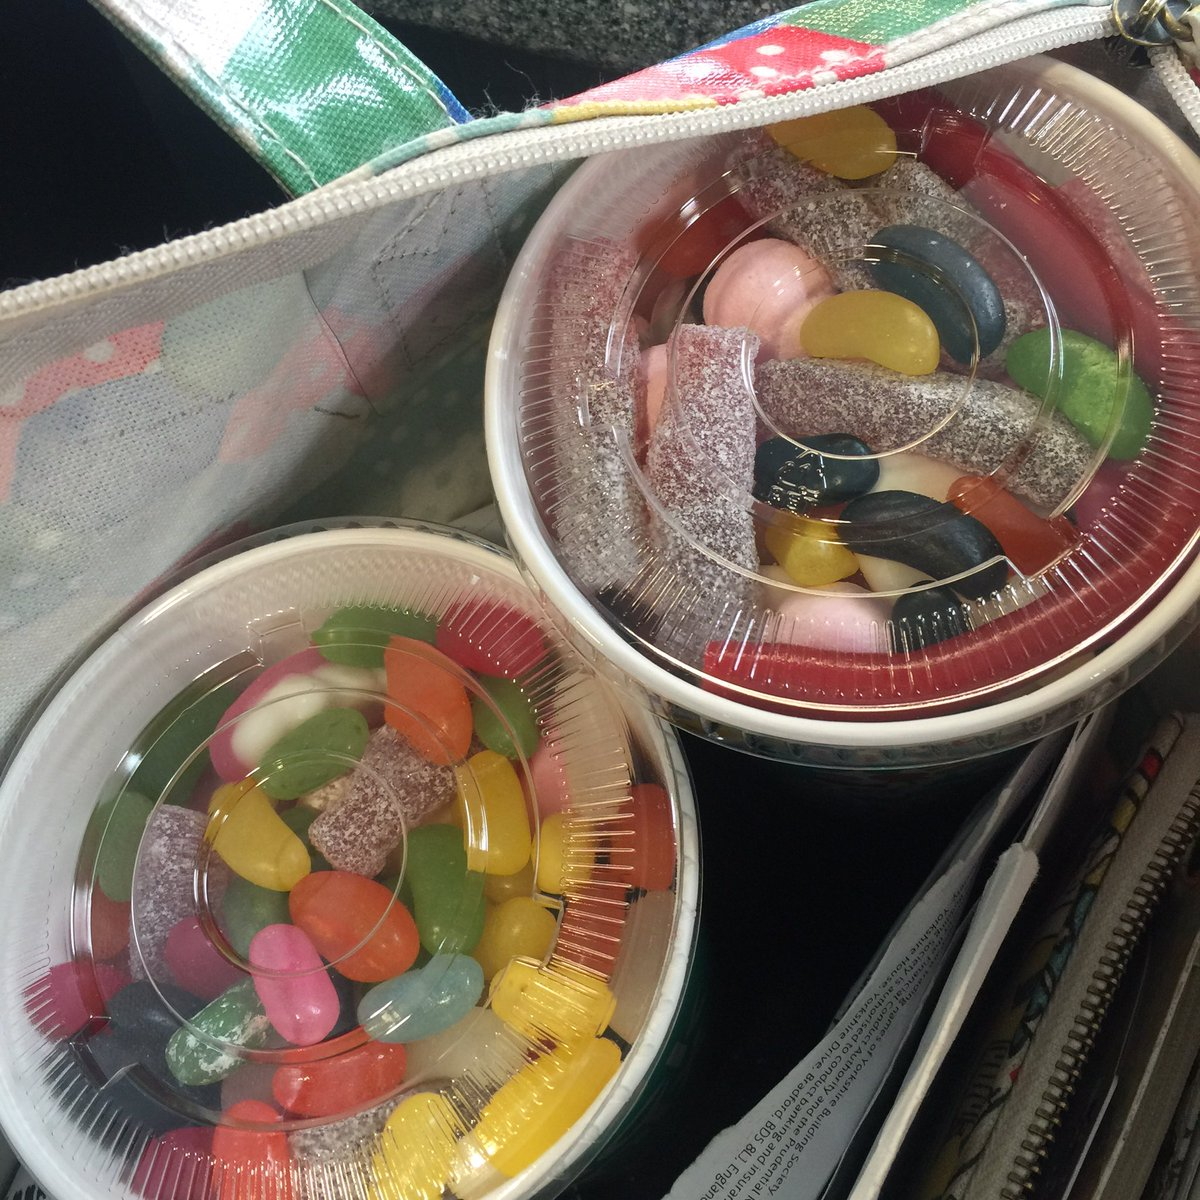 When sweets are half price, it's the law to buy twice as much. Am I right? @LoveWilko https://t.co/odWrkWeipy